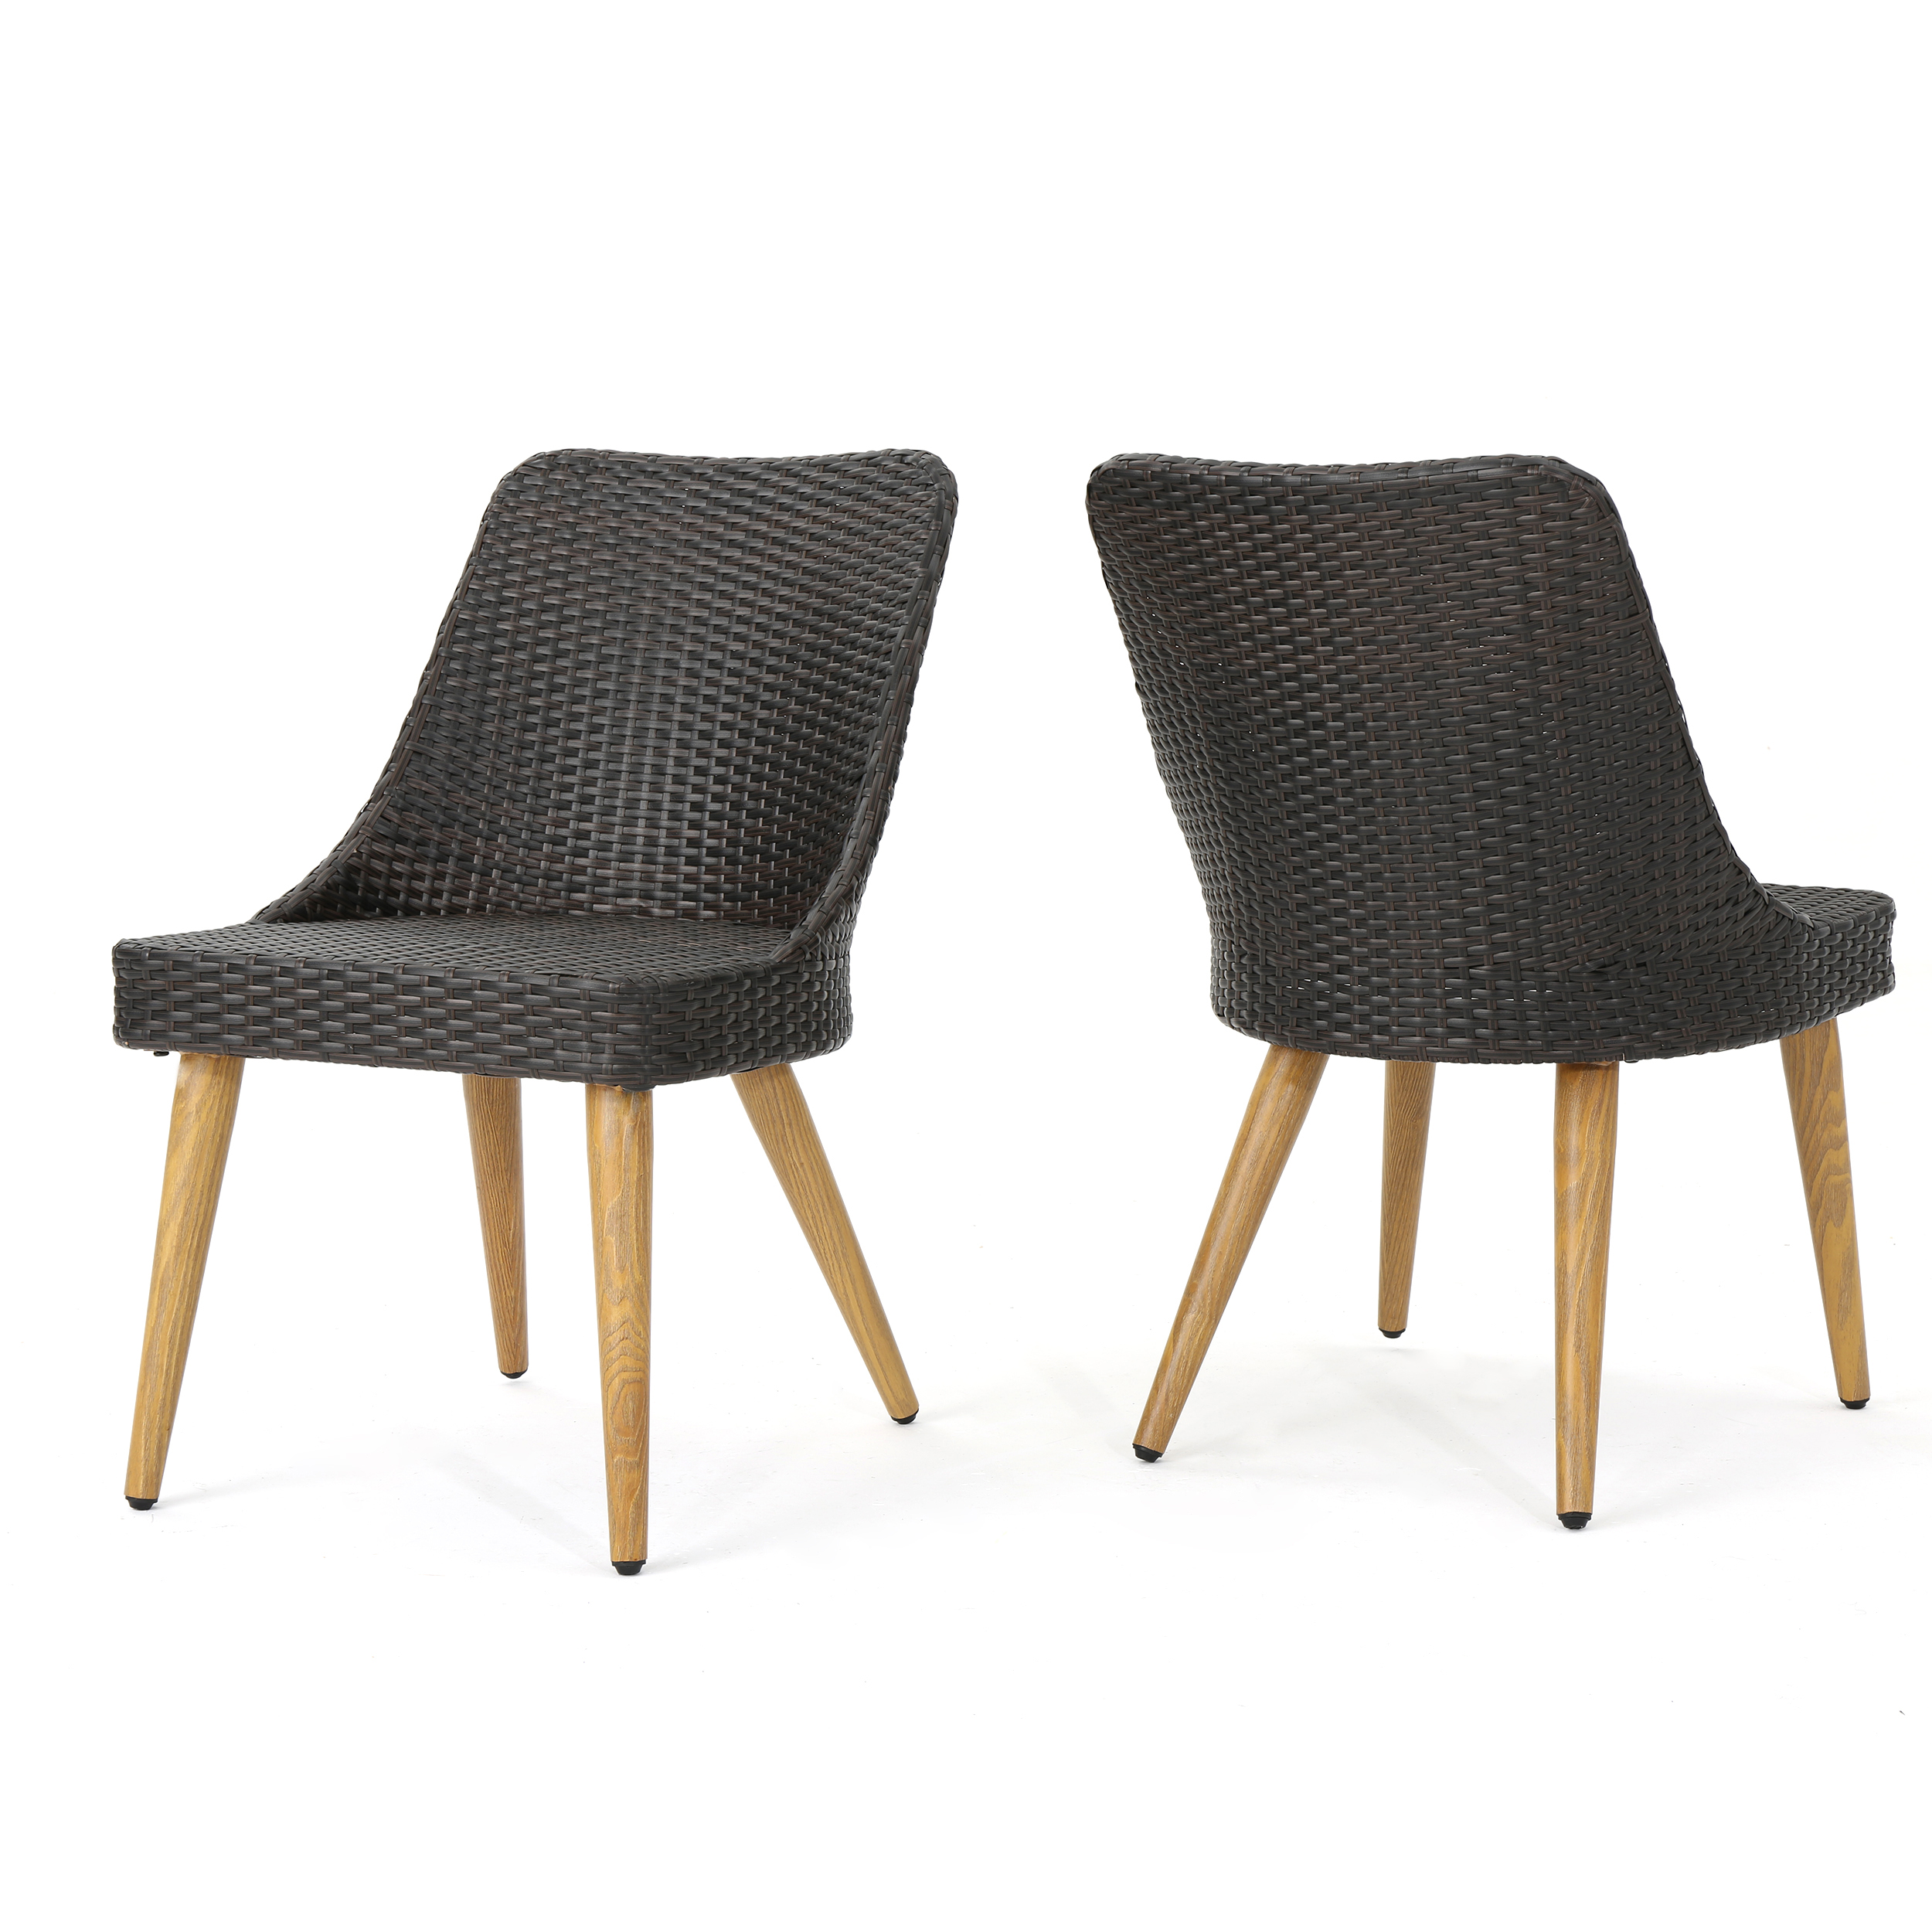 Desmond Outdoor Wicker Dining Chairs with Light Brown Wood Finished Metal Legs, Set of 2, Multibrown